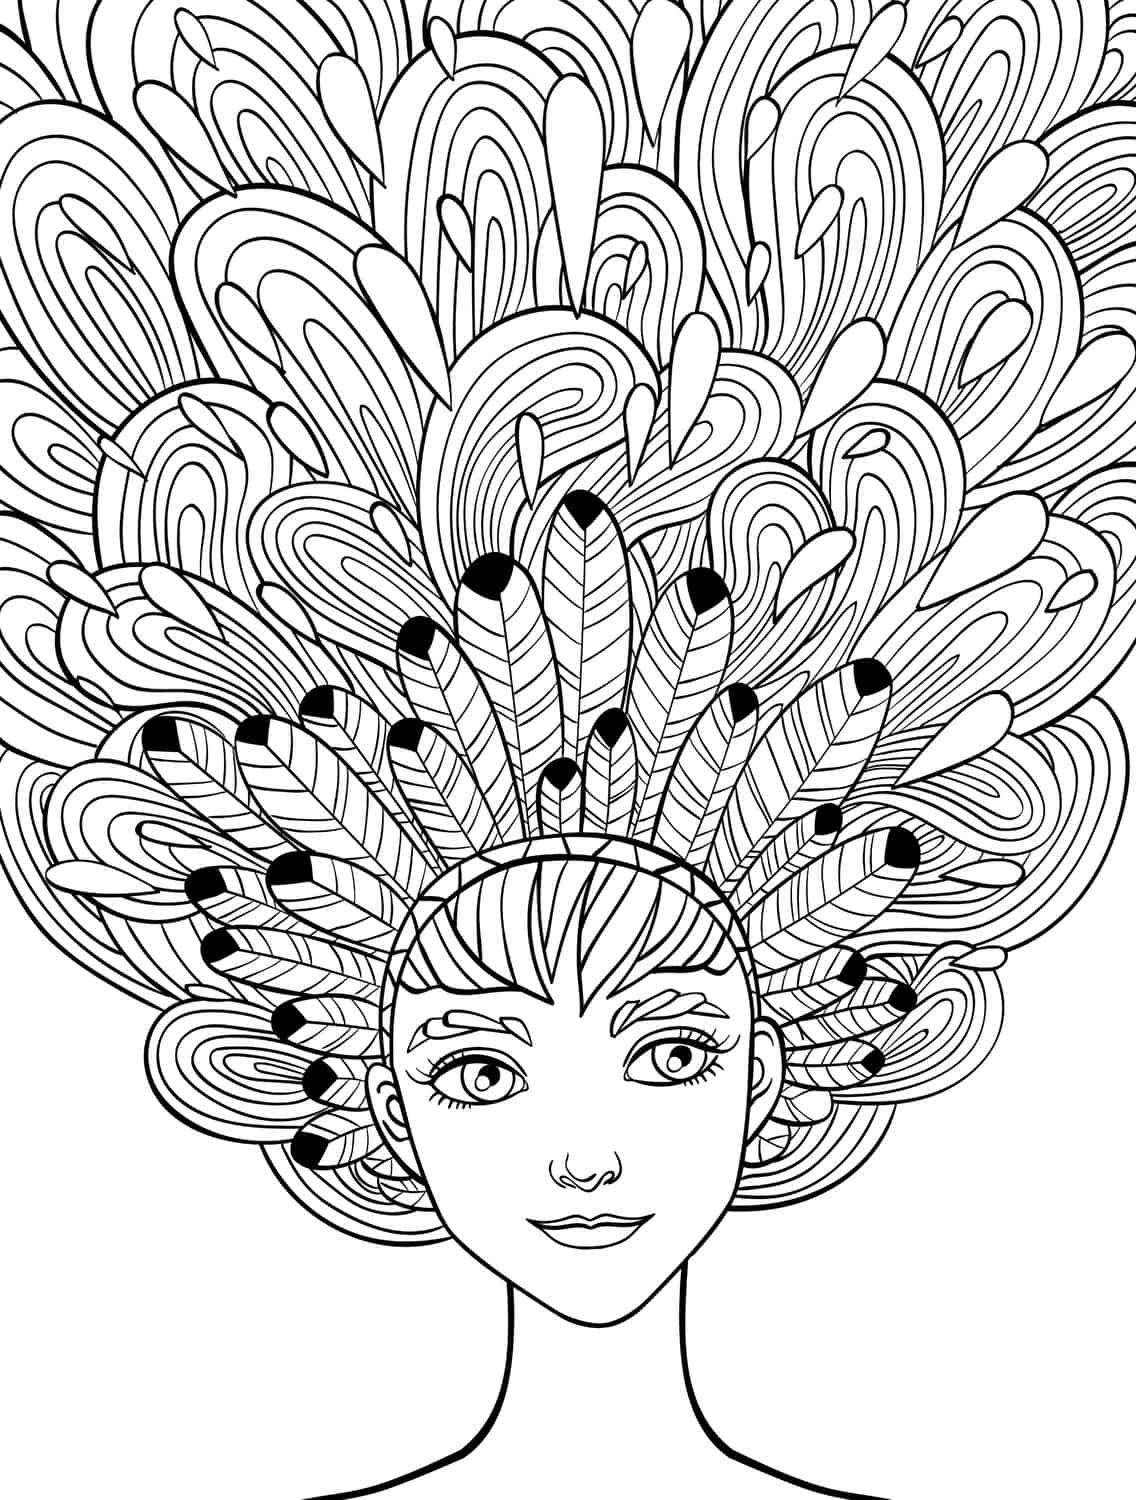 coloring pages : Coloring Pages To Print Out For Adults Luxury ... | 3300x2500